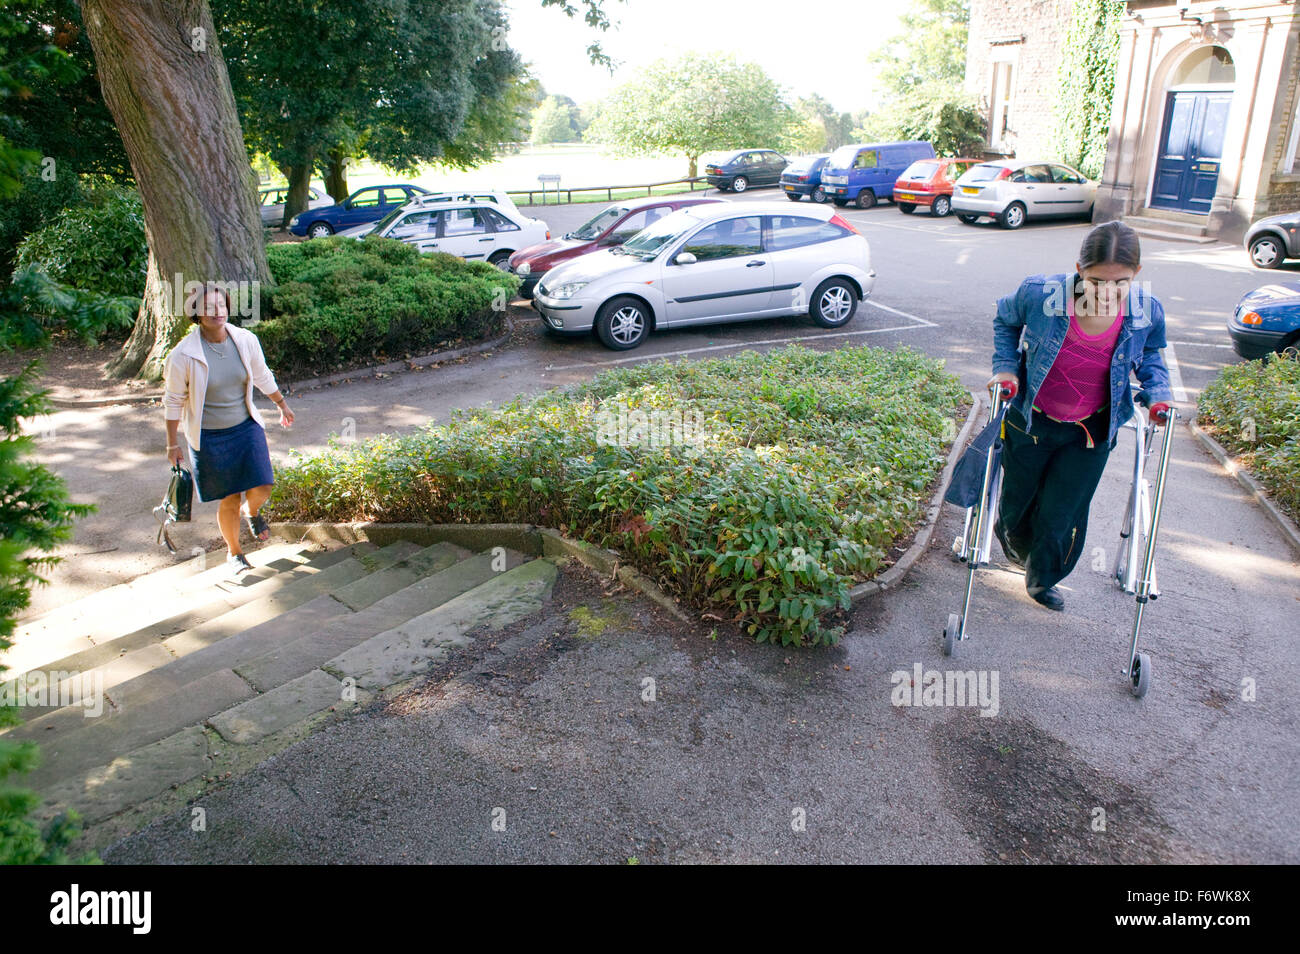 Different paths of access: conventional steps or a smooth ramp for easier access for people with physical disabilities, - Stock Image